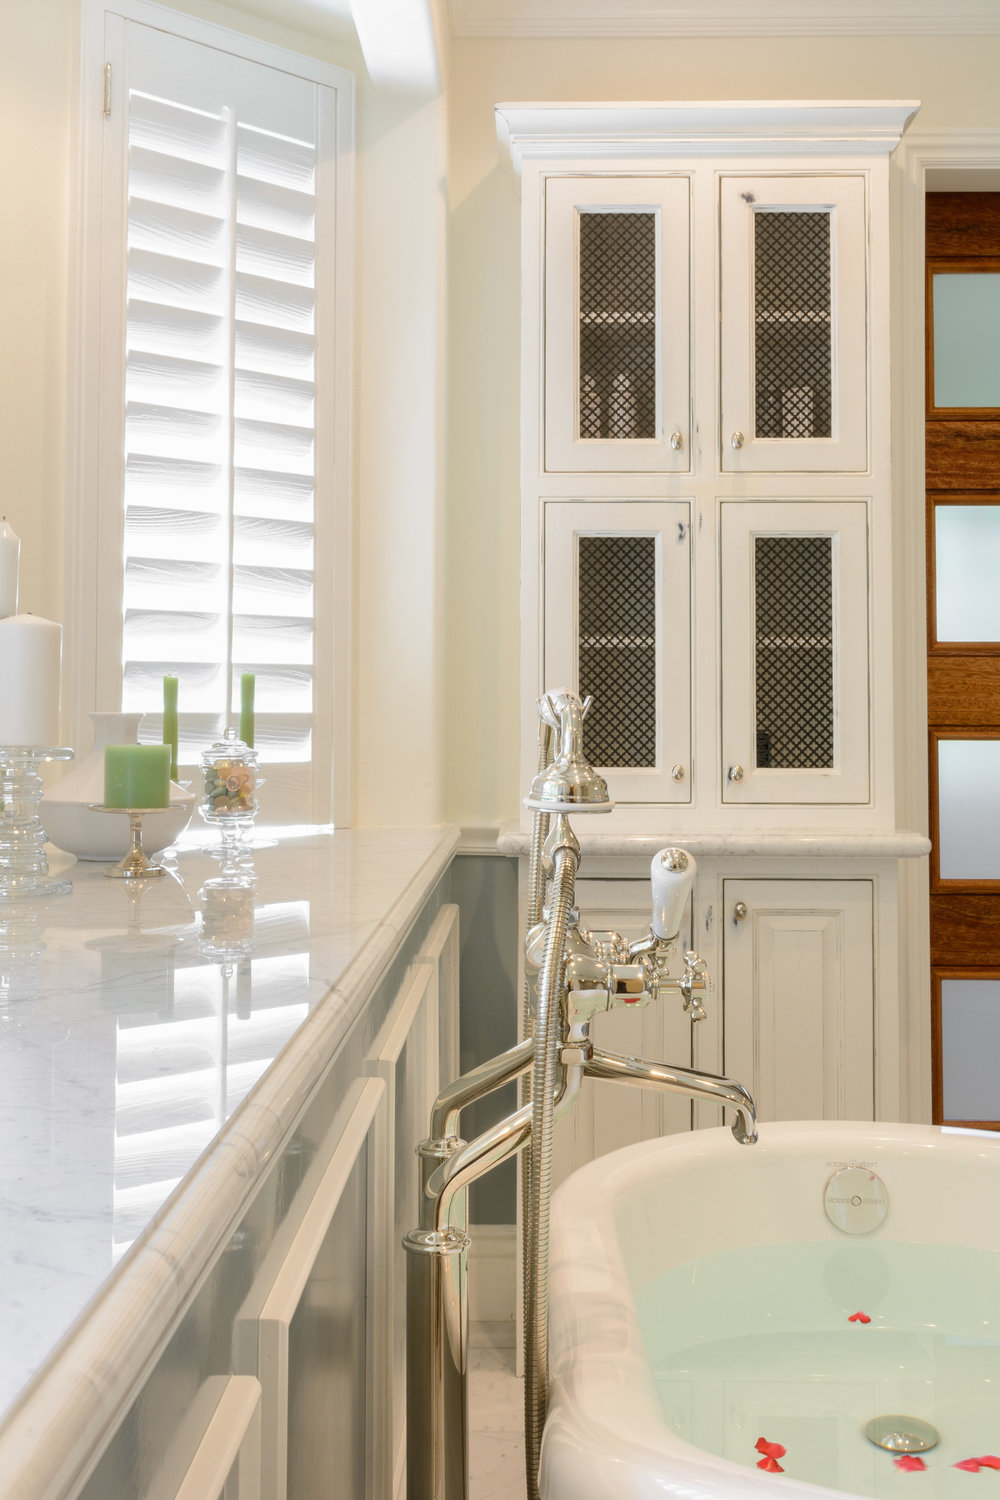 Marble slab bay window counter, traditional polished nickel tub filler and distressed white bathroom cabinets